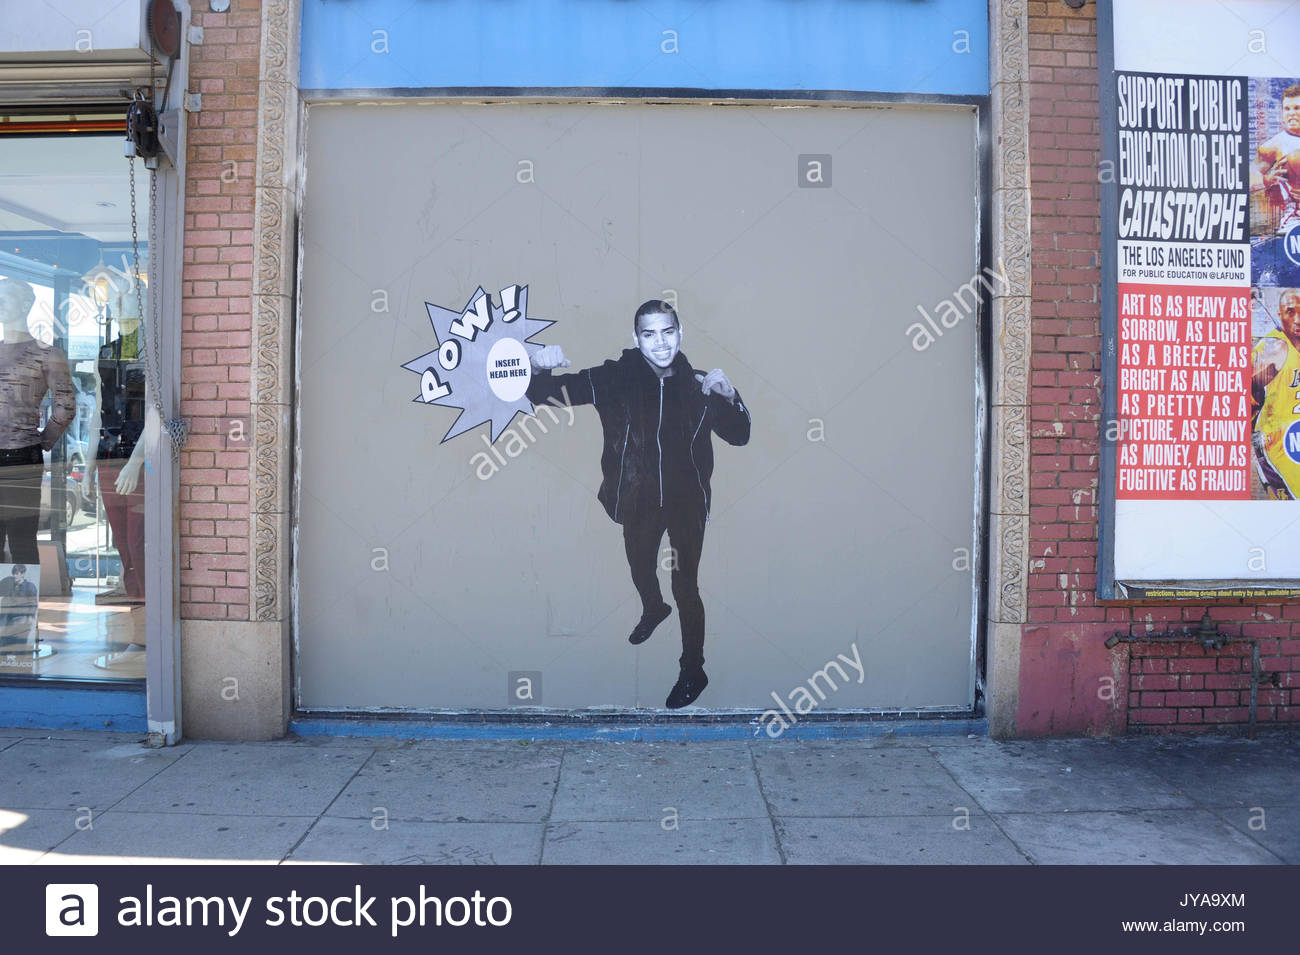 Chris Brown Graffiti A Los Angeles Graffiti Artist Portrays A Chris Brown Figure With A Pow Caption On The Side Of A Clothing Store On Melrose Ave In